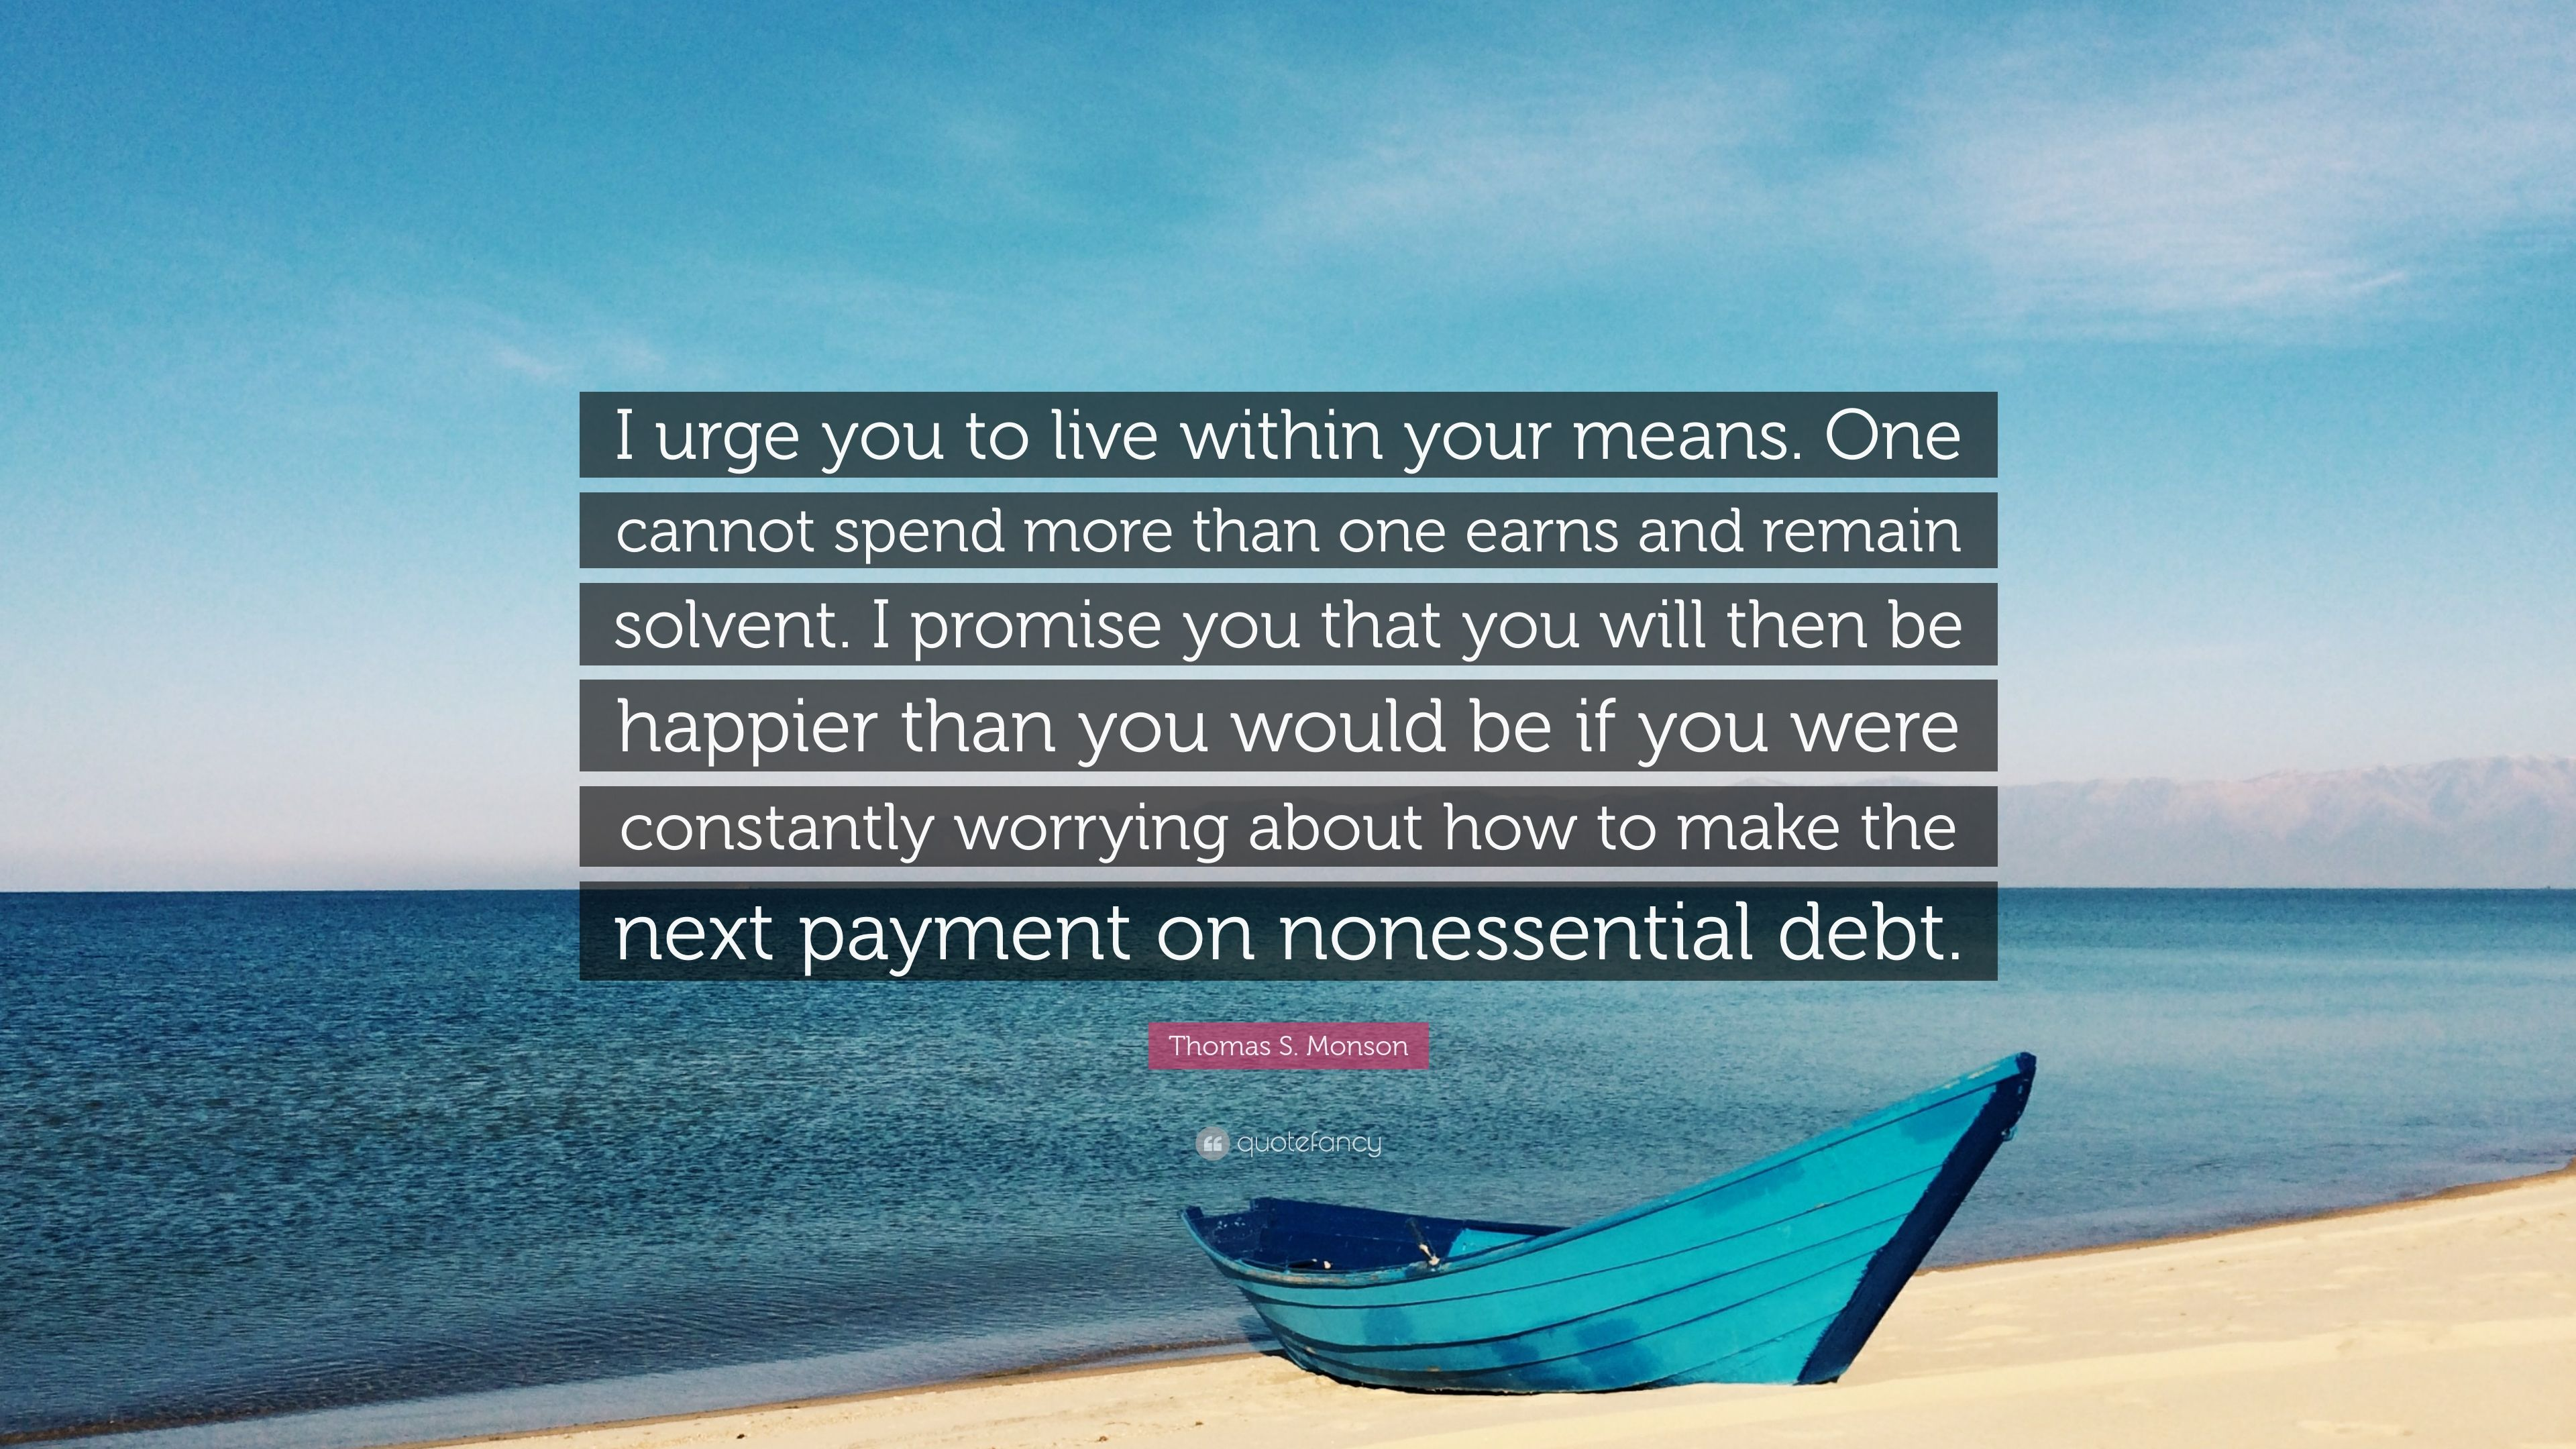 Thomas S Monson Quote I Urge You To Live Within Your Means One